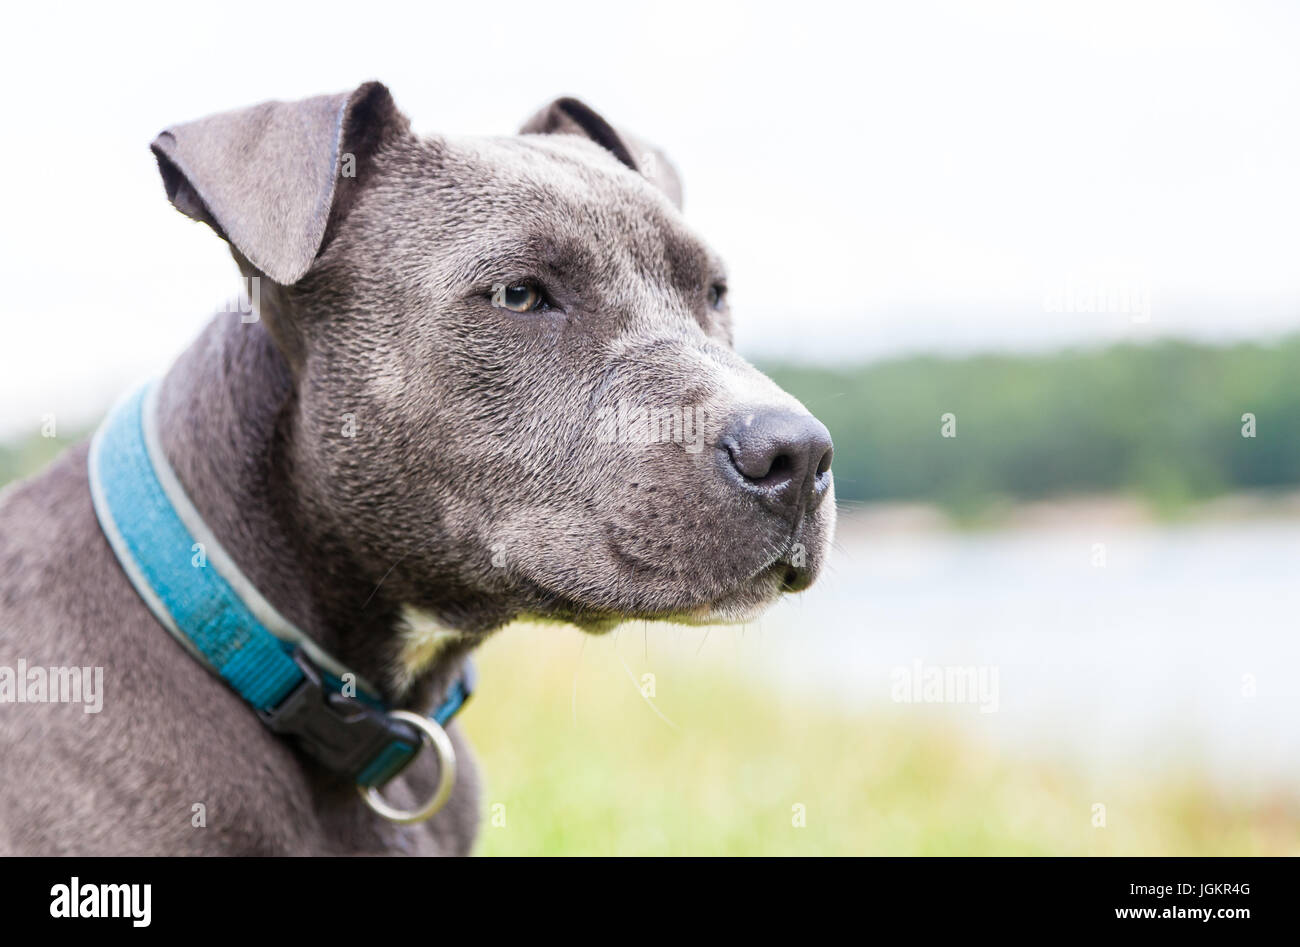 a young pitbull with blue collar portrait - Stock Image